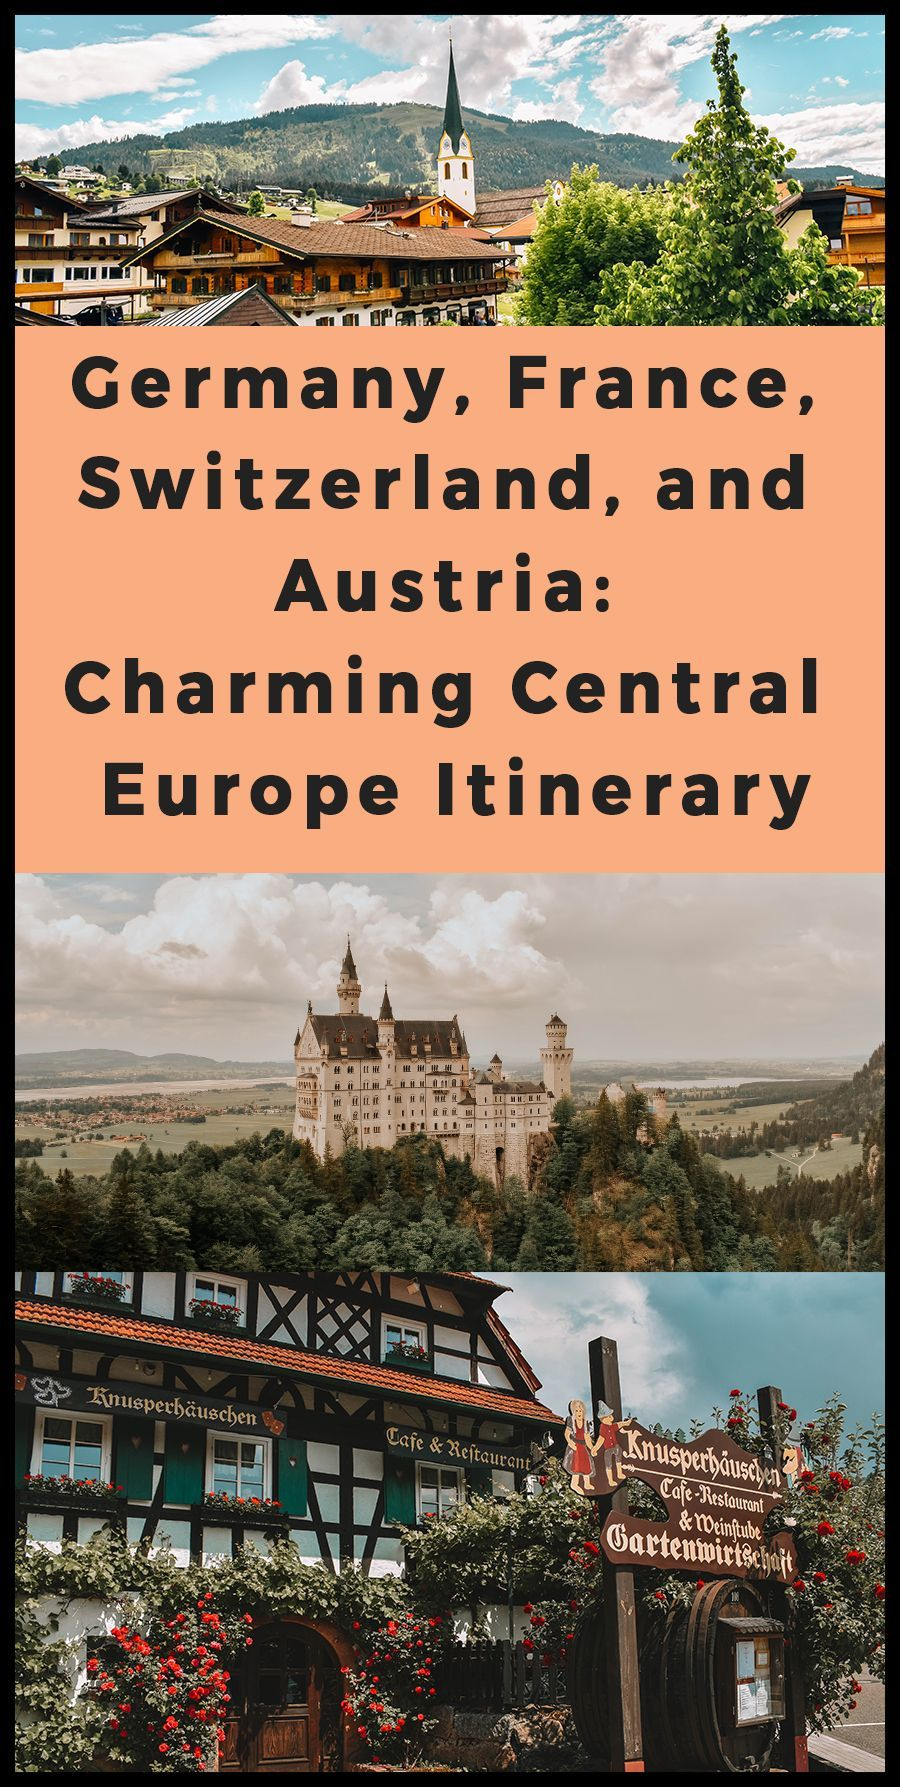 France, Switzerland, and Austria: Charming Central Europe Itinerary Germany, France, Switzerland, and Austria: Charming Central Europe Itinerary - How to spend 7 days in the most beautiful places in Europe. From stunning castles, great food, and beautiful scenic views, you can't go wrong!Germany, France, Switzerland, and Austria: Charming Centra...